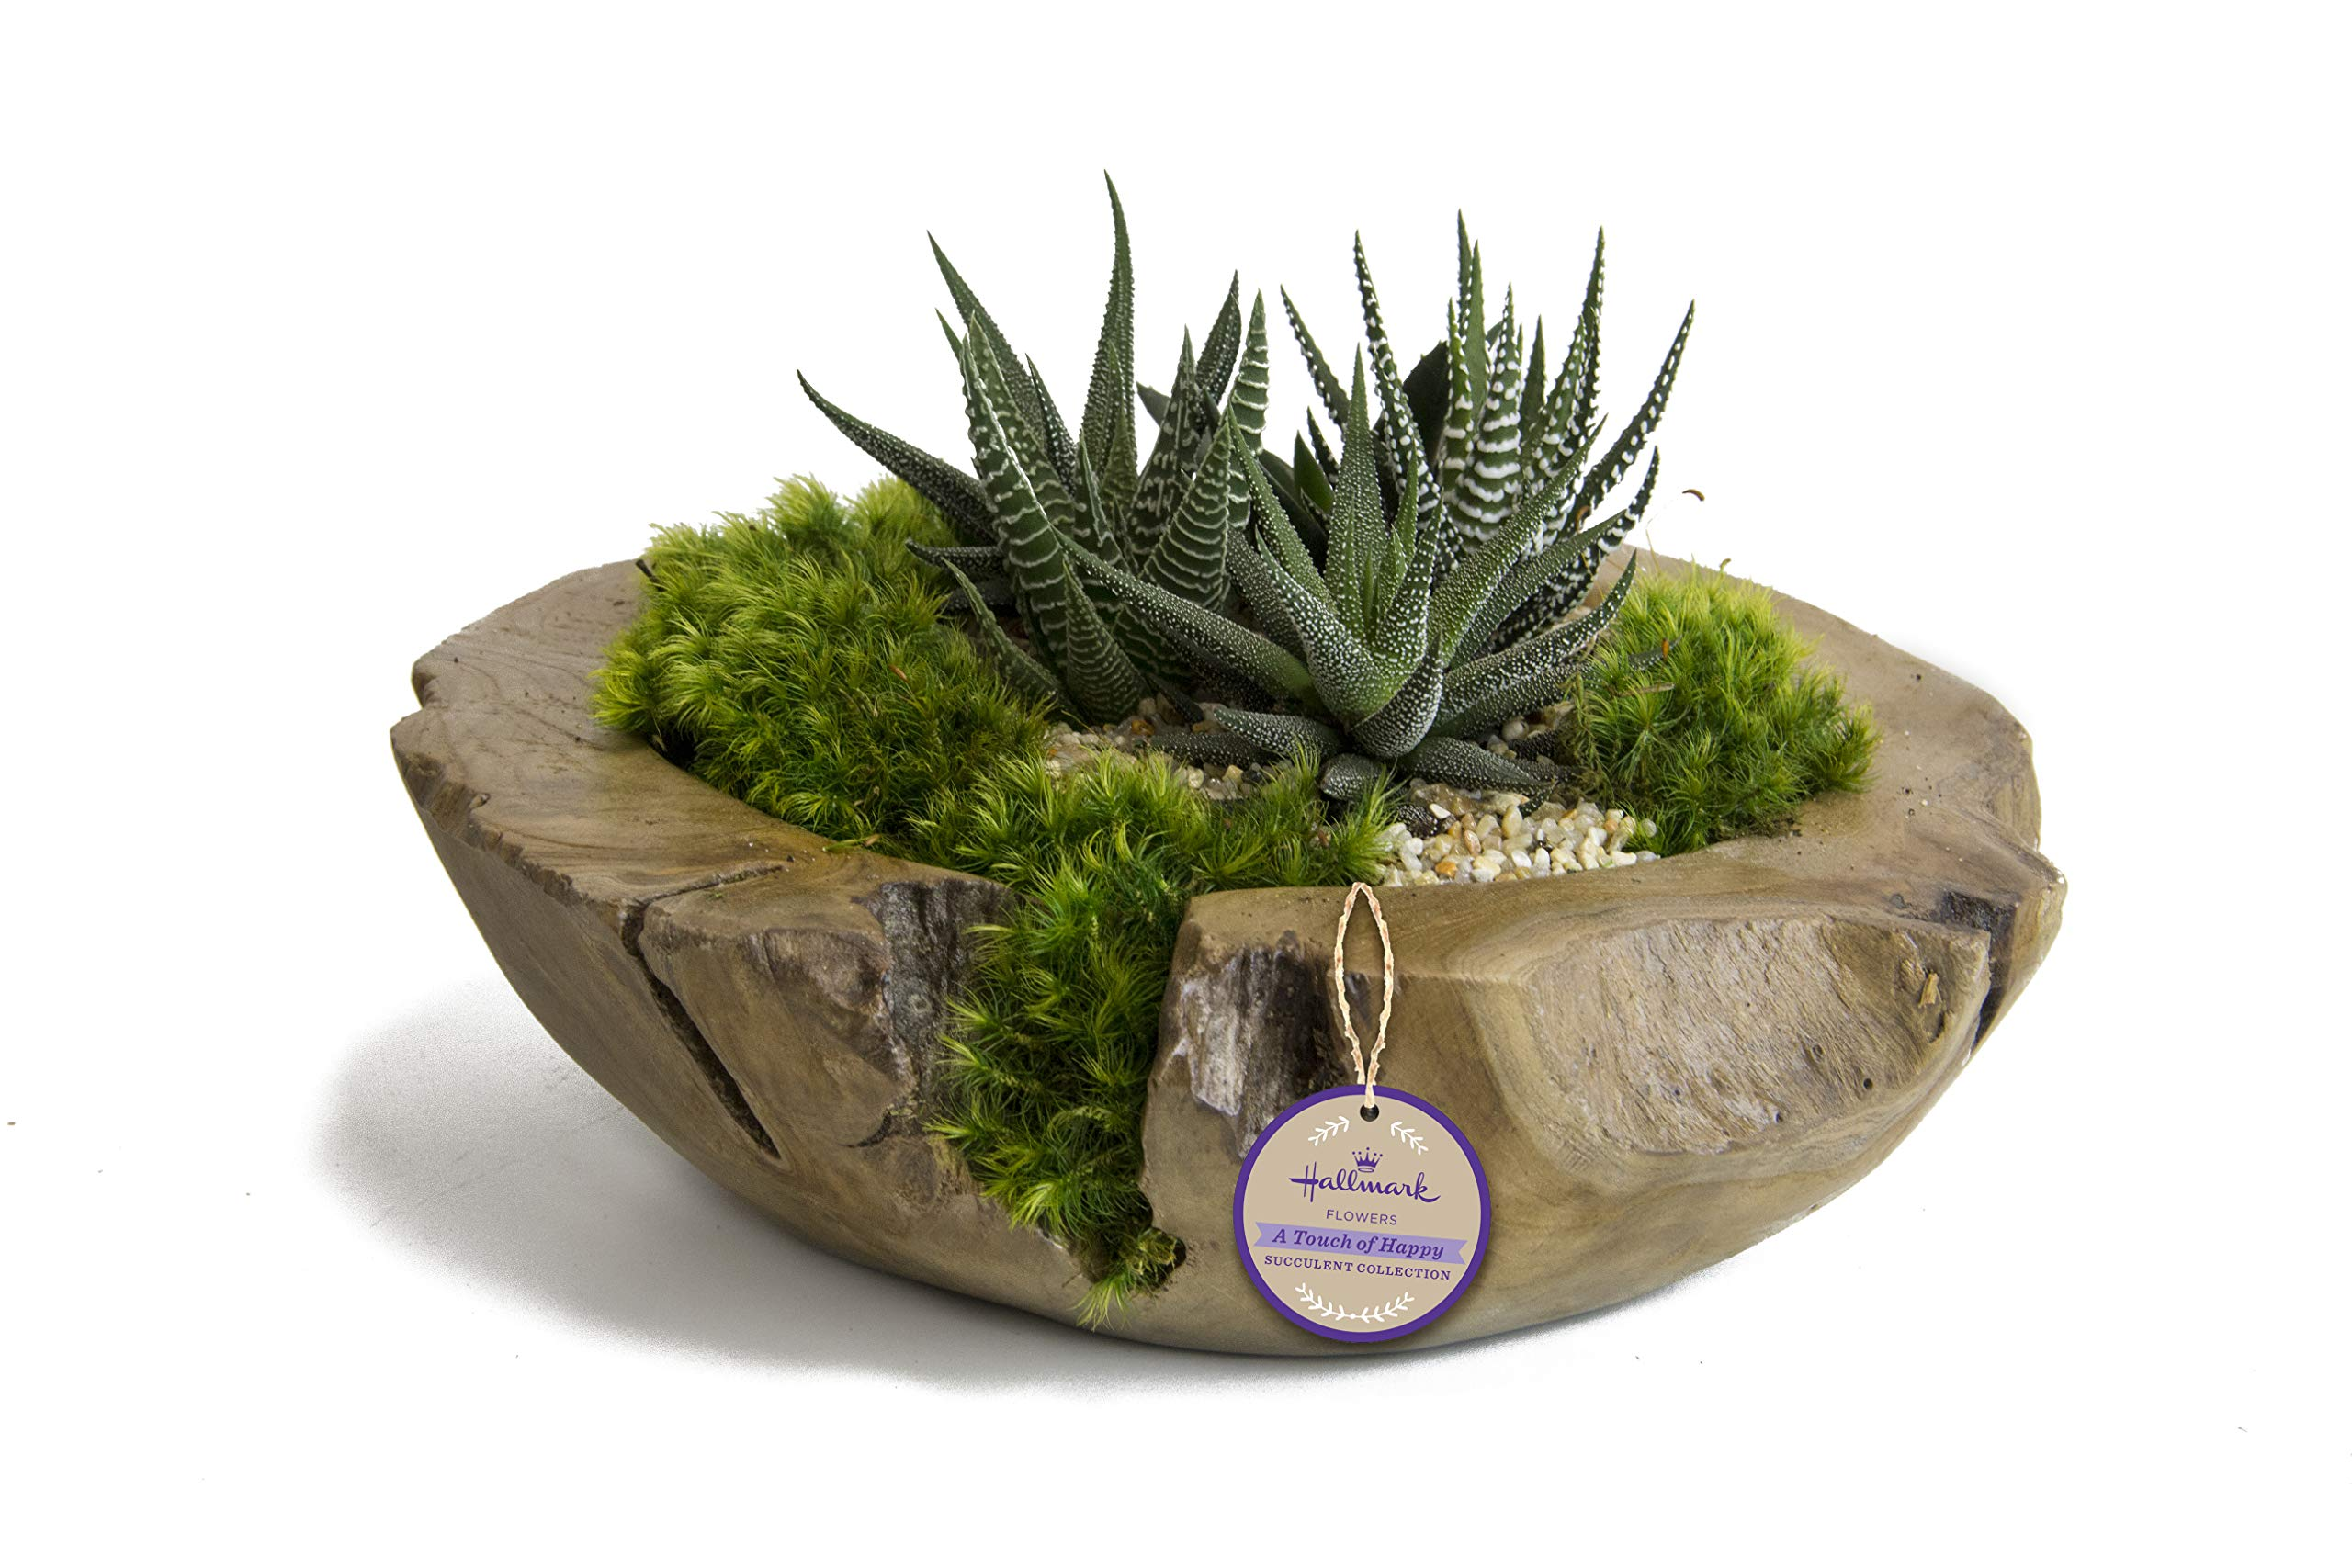 Live Succulent Garden in 10'' Teak Bowl Container, From Hallmark Flowers by Hallmark Flowers